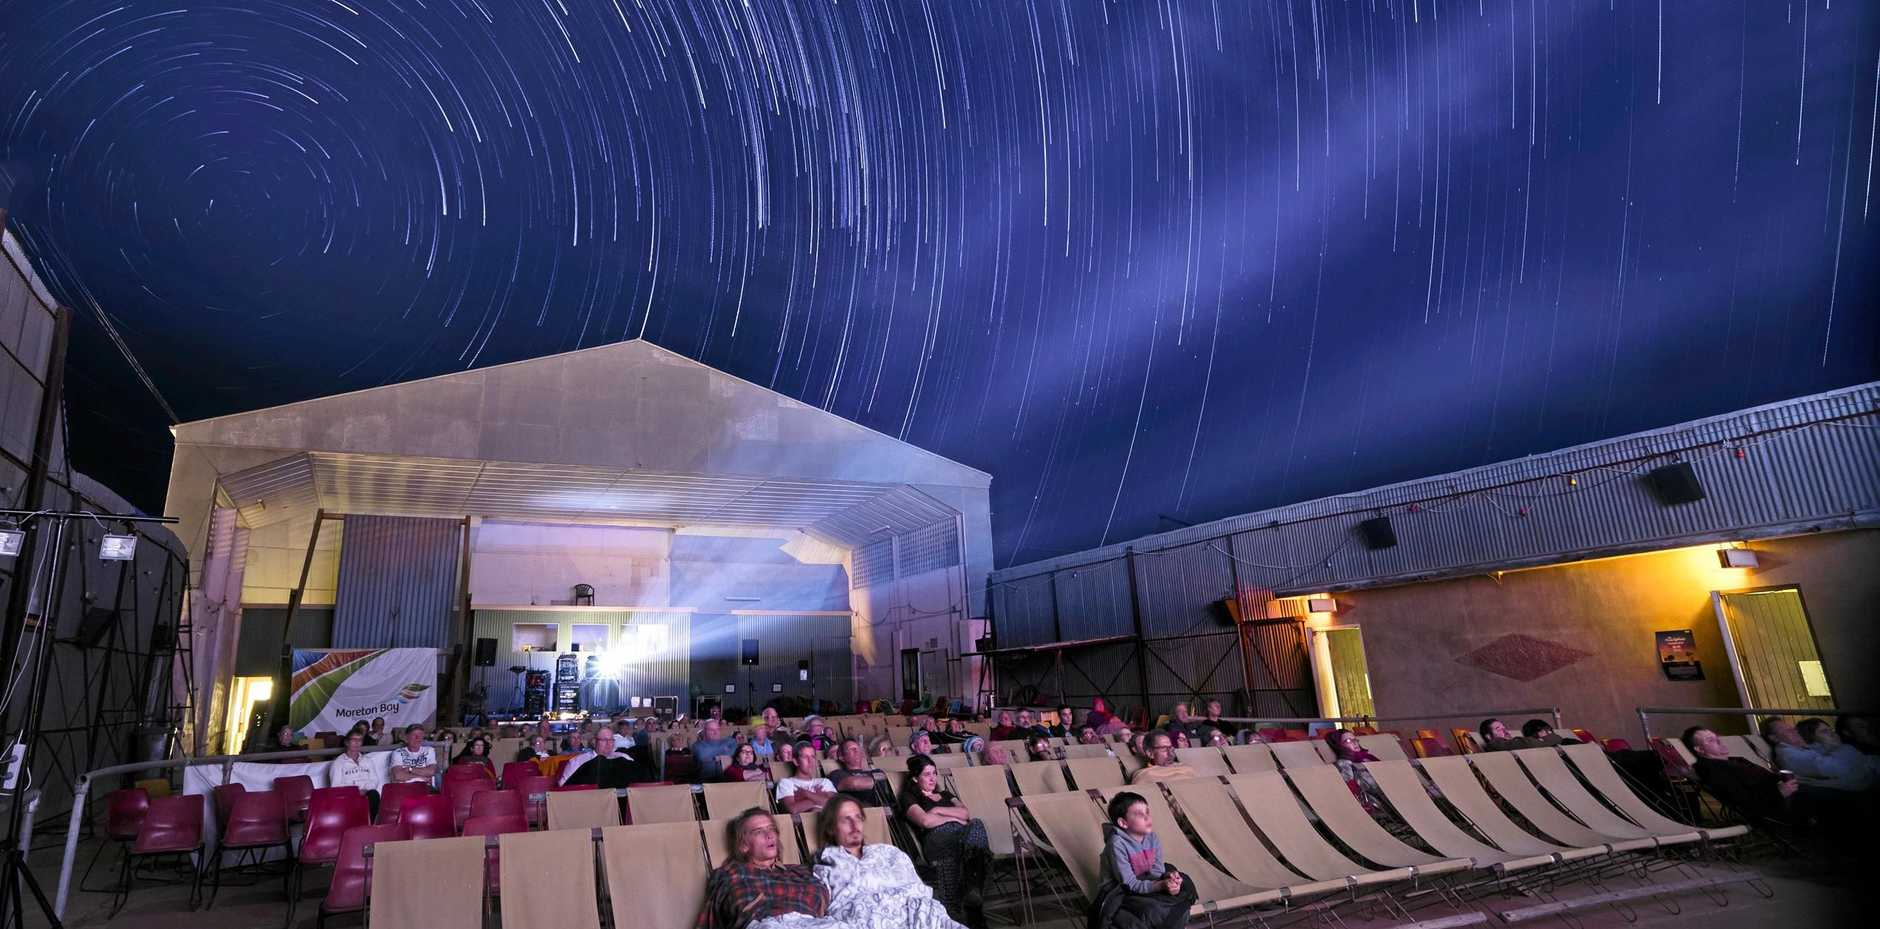 Winton's Royal Open Theatre, the oldest open-air cinema still operating in Australia, is one of two venues for the sixth annual Vision Splendid Outback Film Festival.